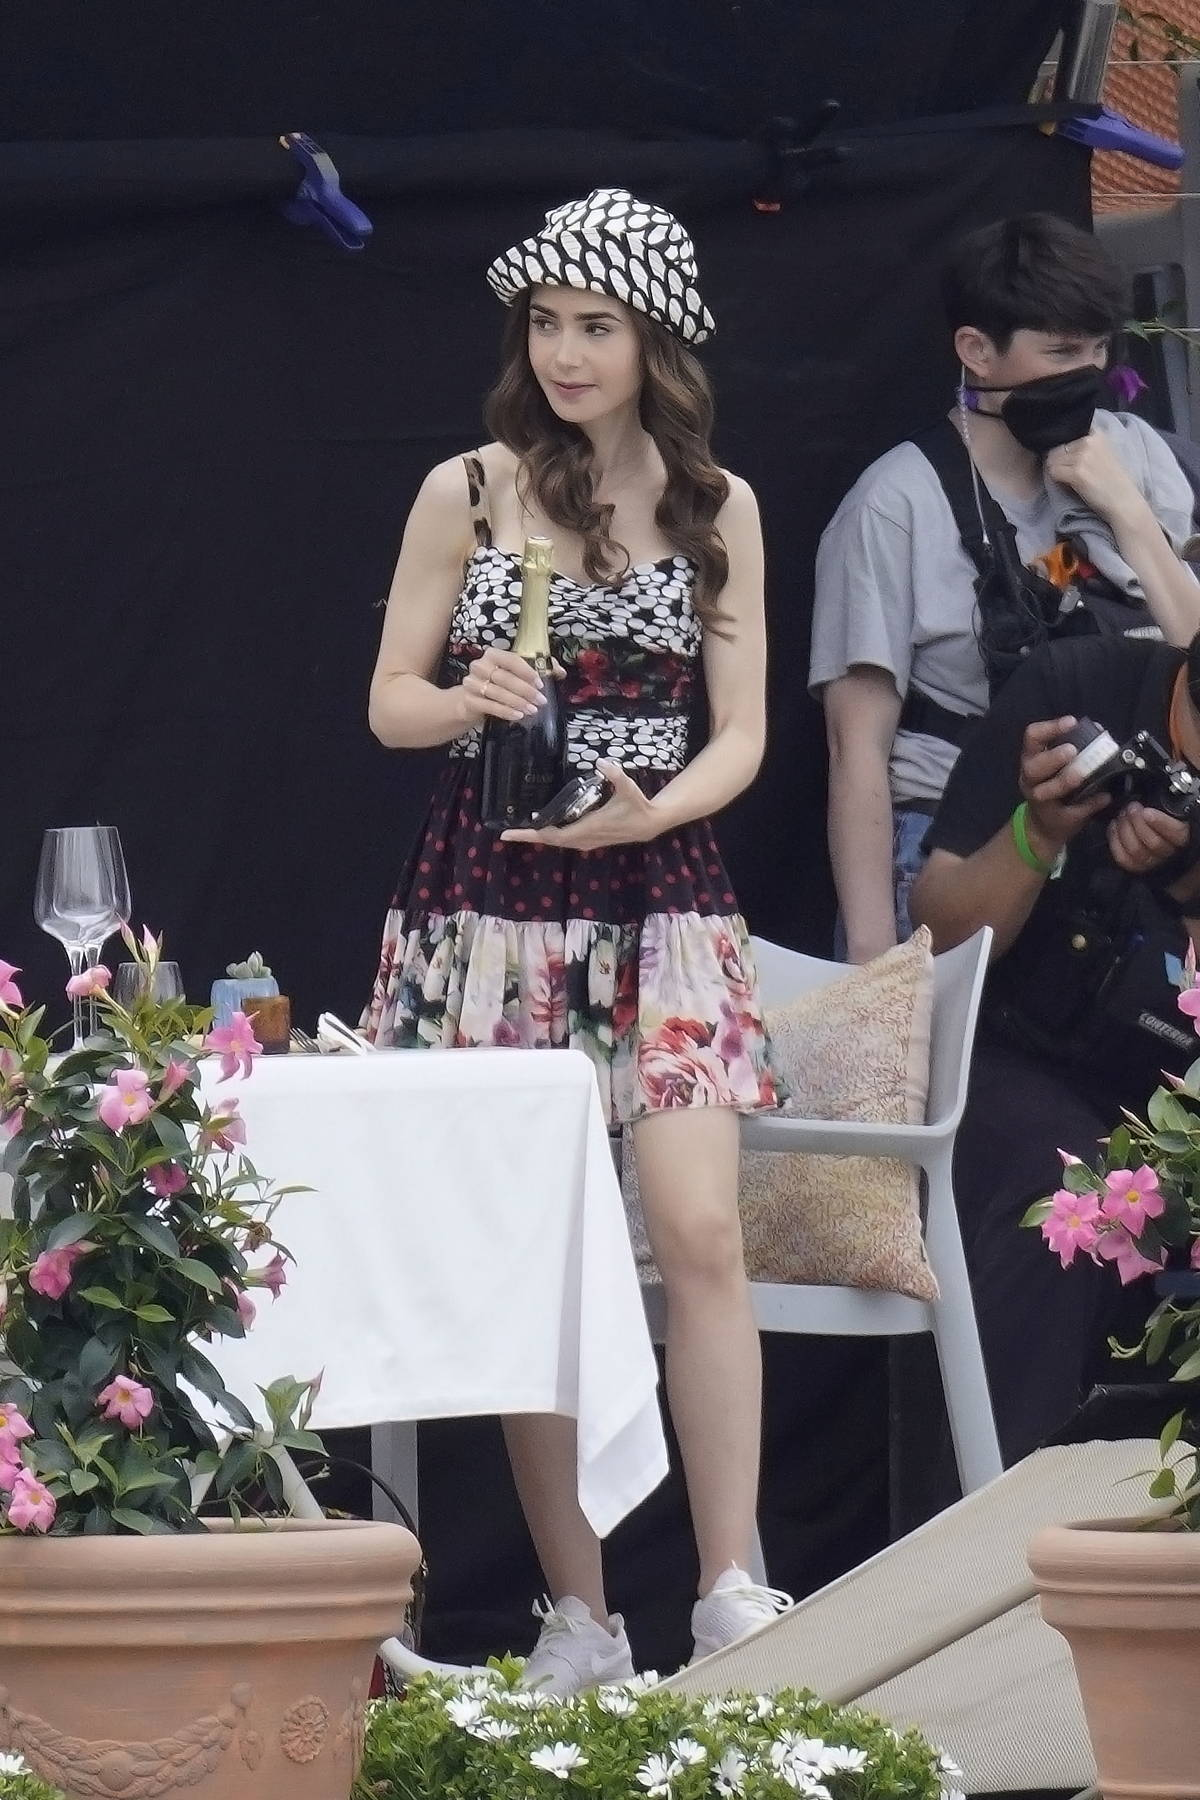 Lily Collins looks cute in multiple stylish dresses while filming on the set of 'Emily in Paris' in Paris, France